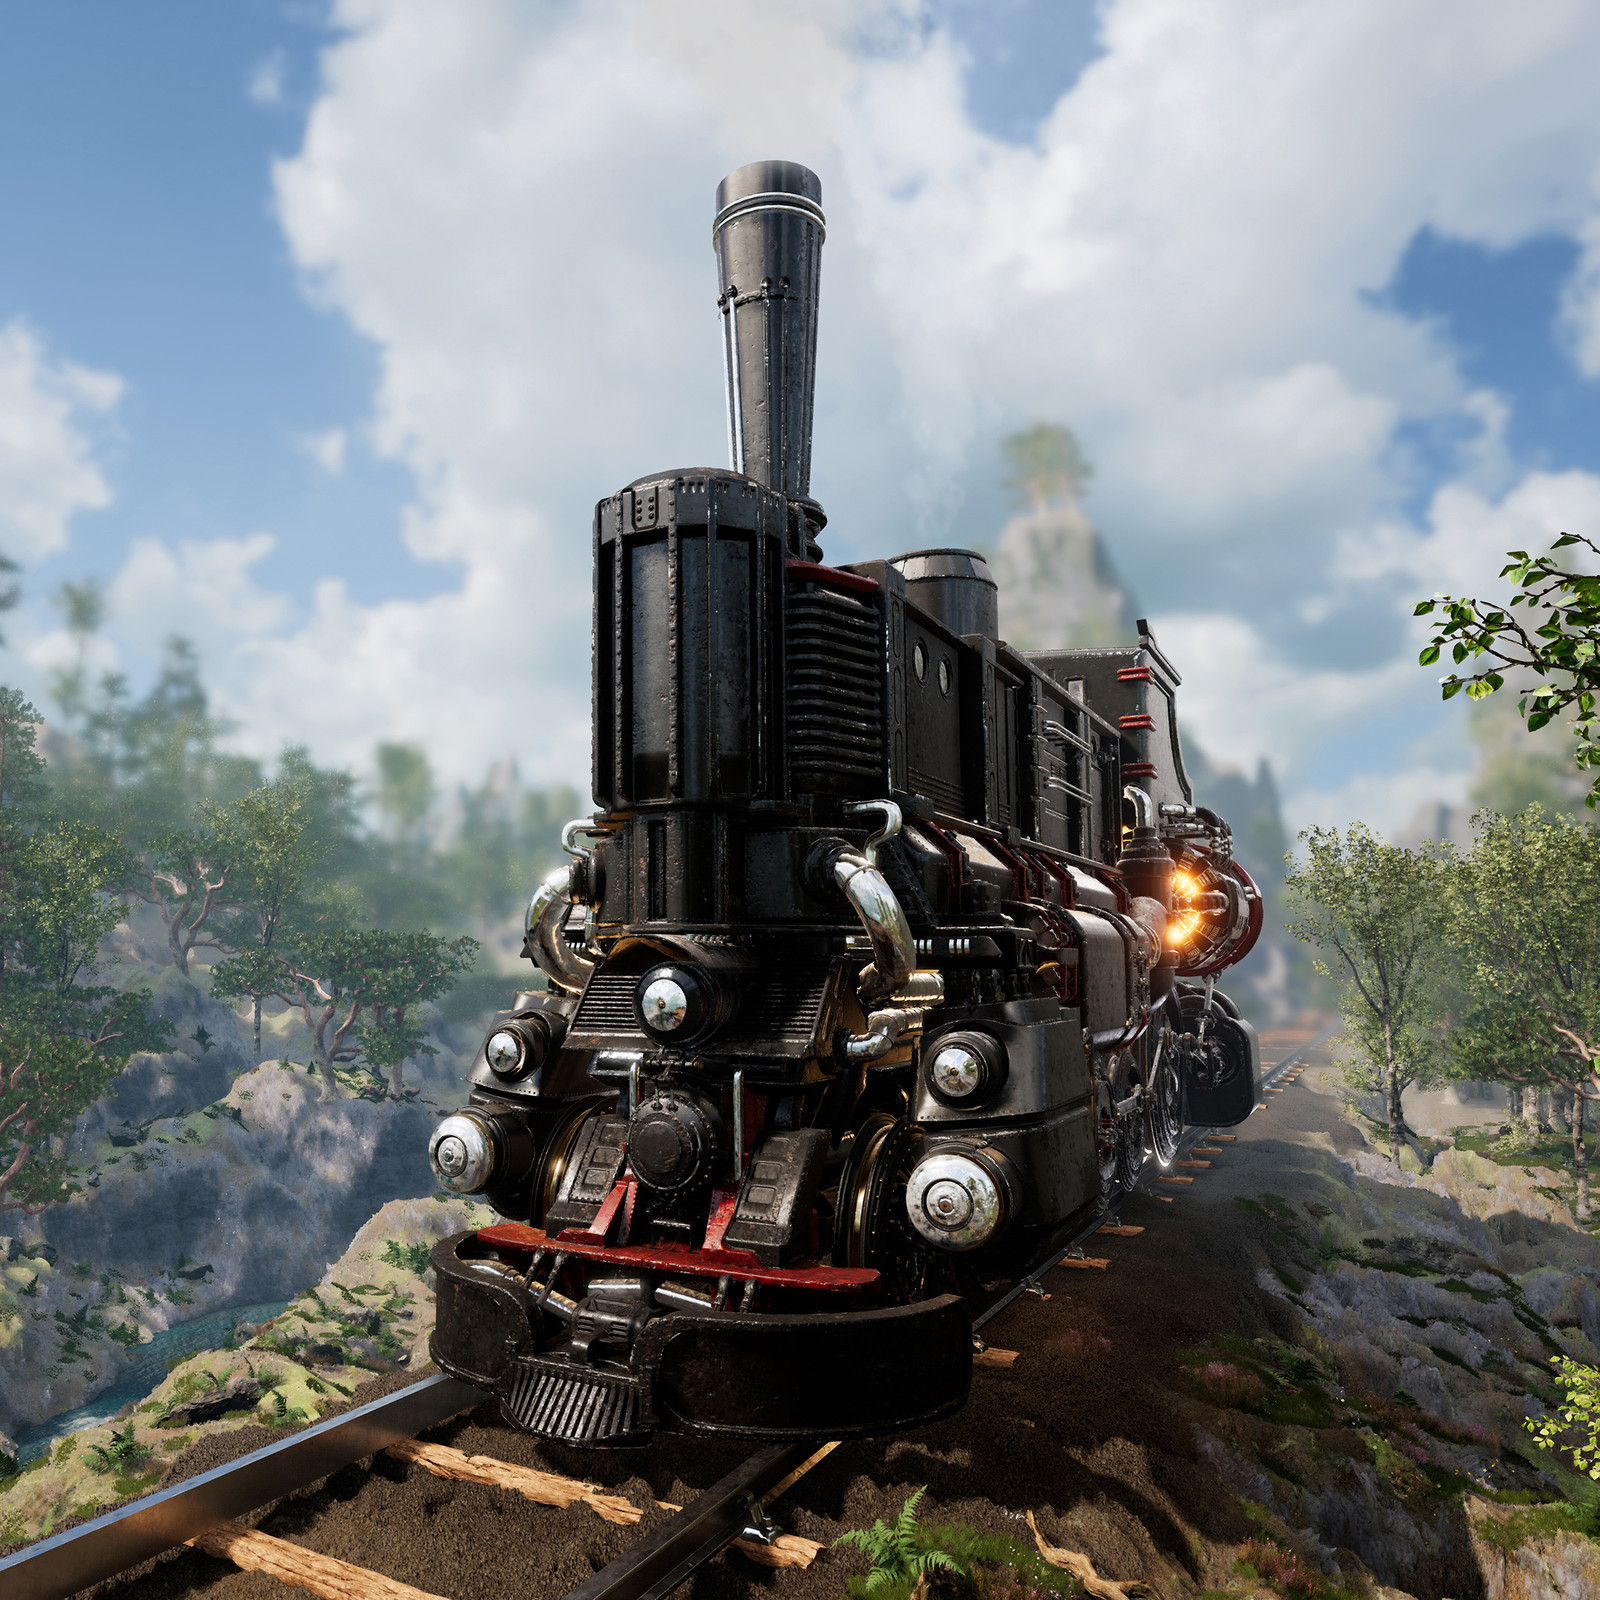 Black Dreadnought Locomotive